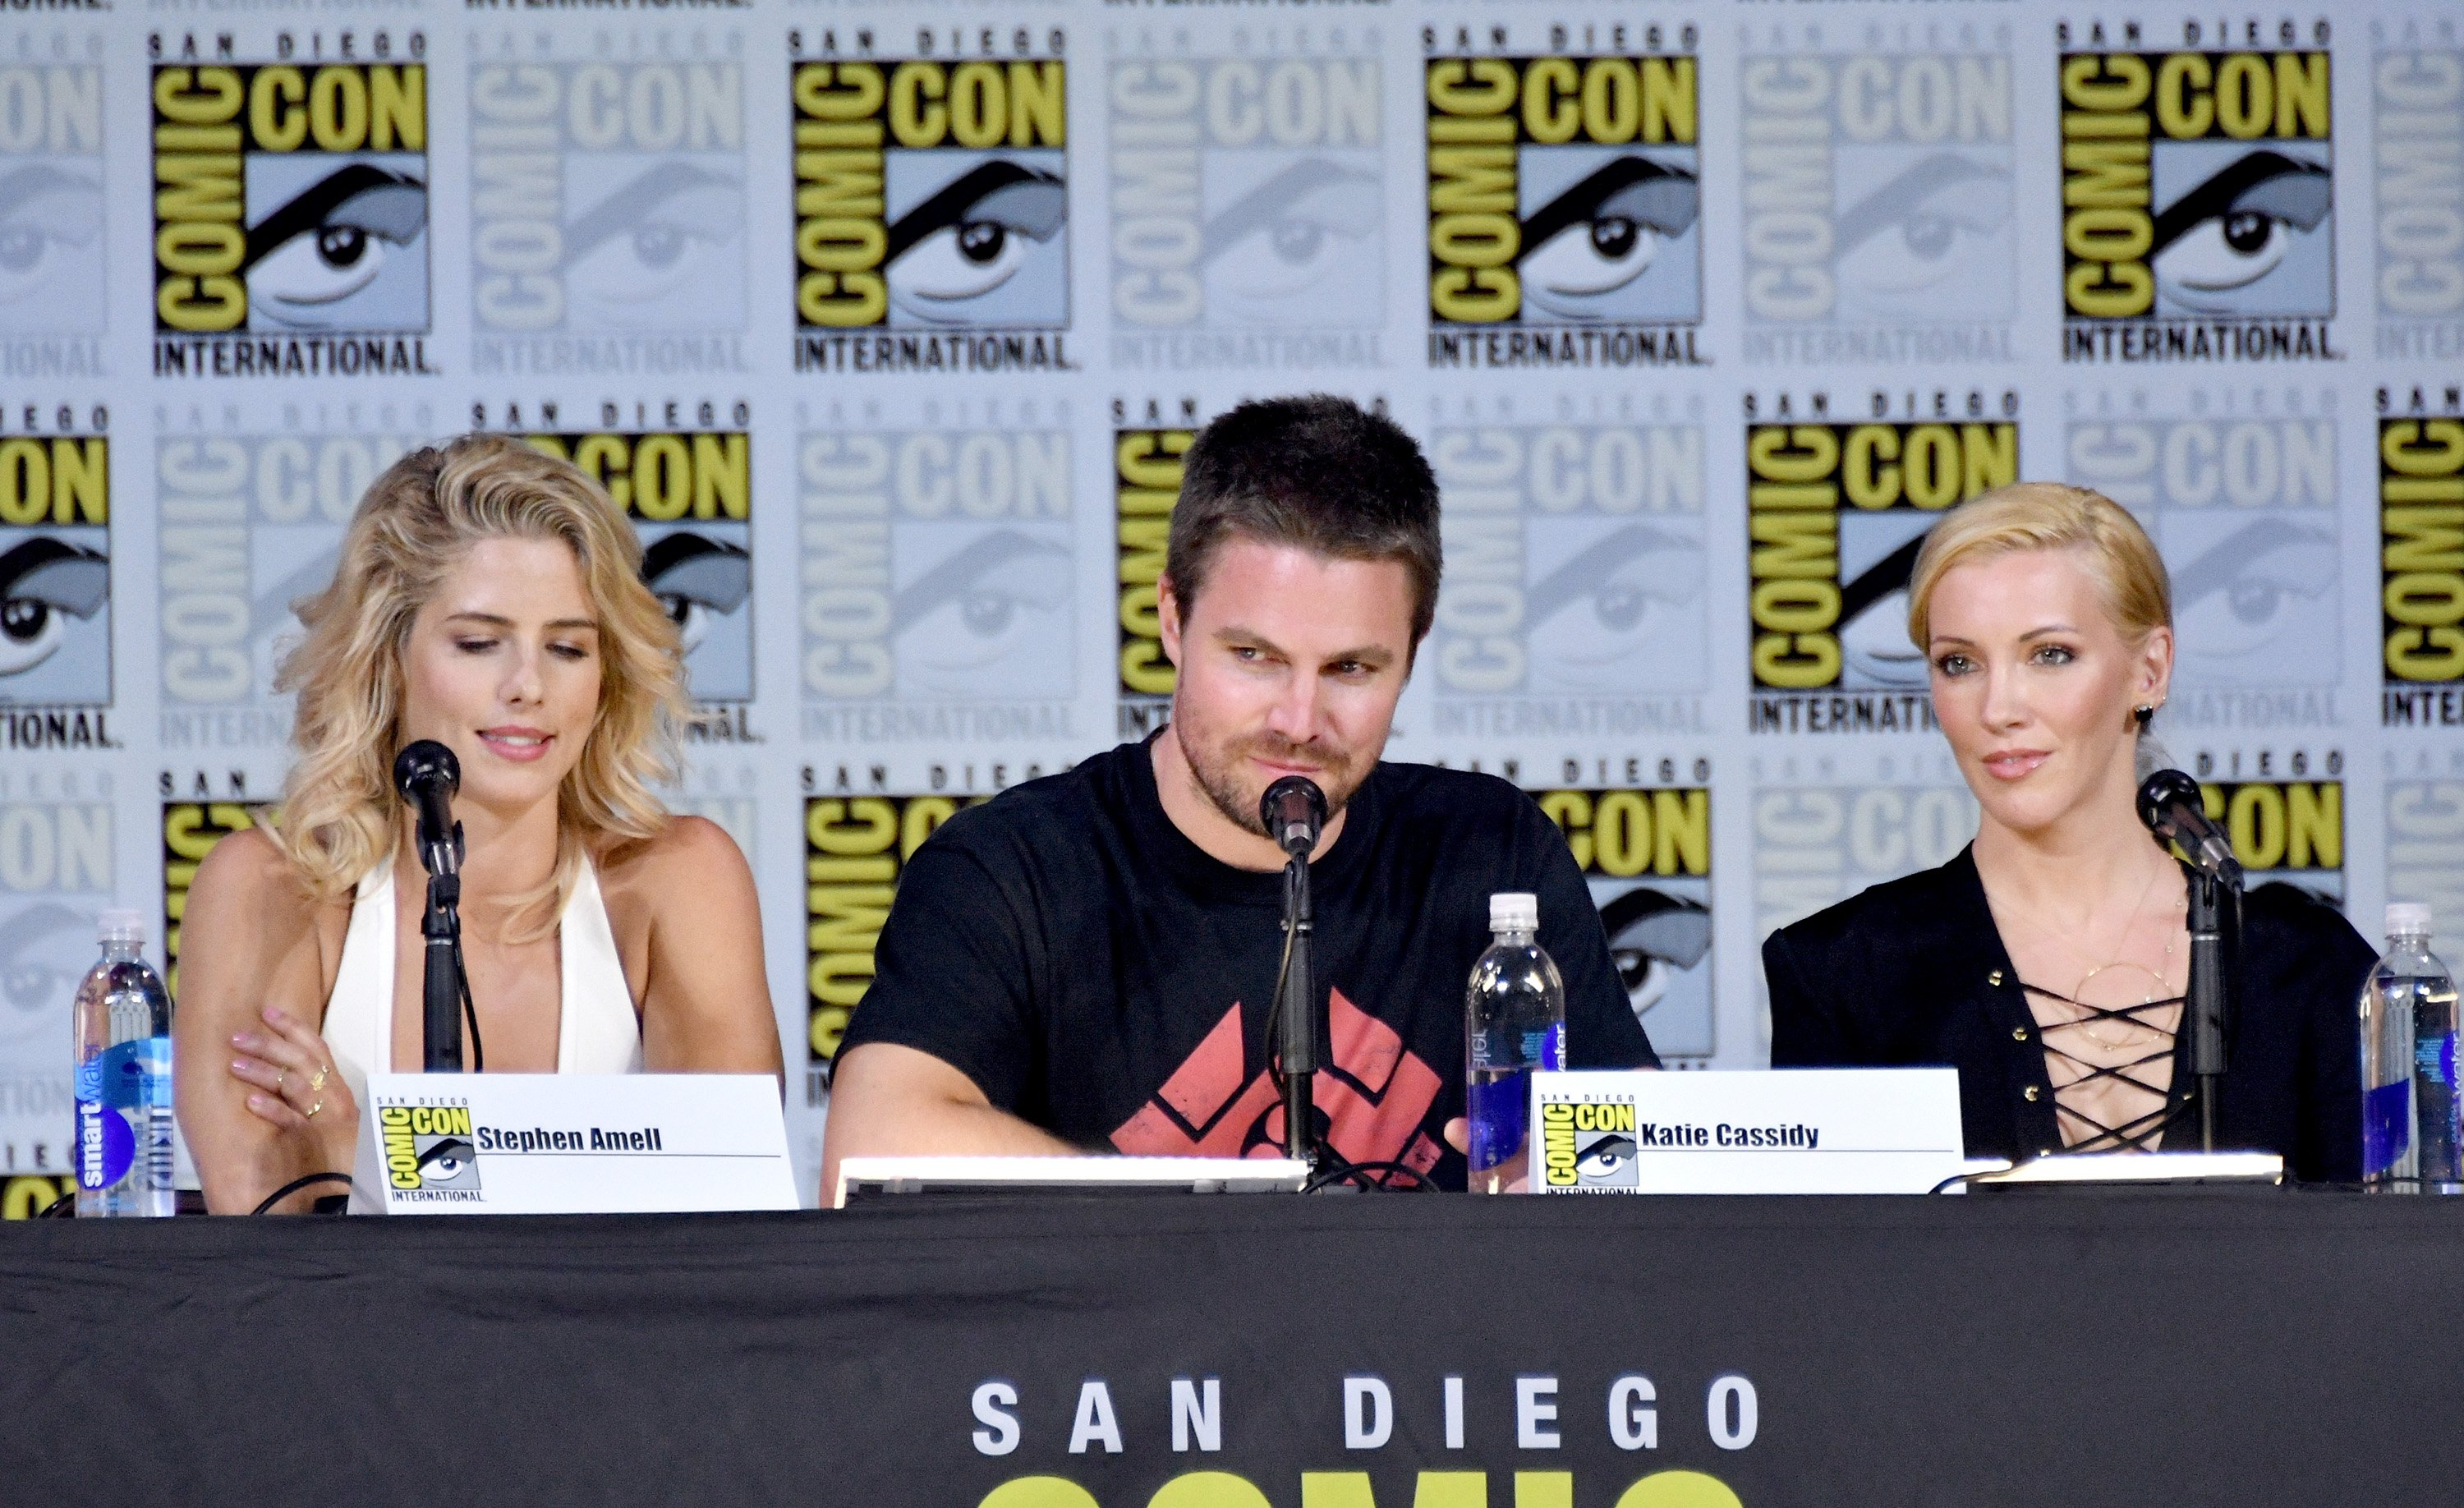 Image Source: Getty Images/Arrow/CW | Emily Ricards, Stephen Amell, and Katie Cassidy in San Diego Comic Con